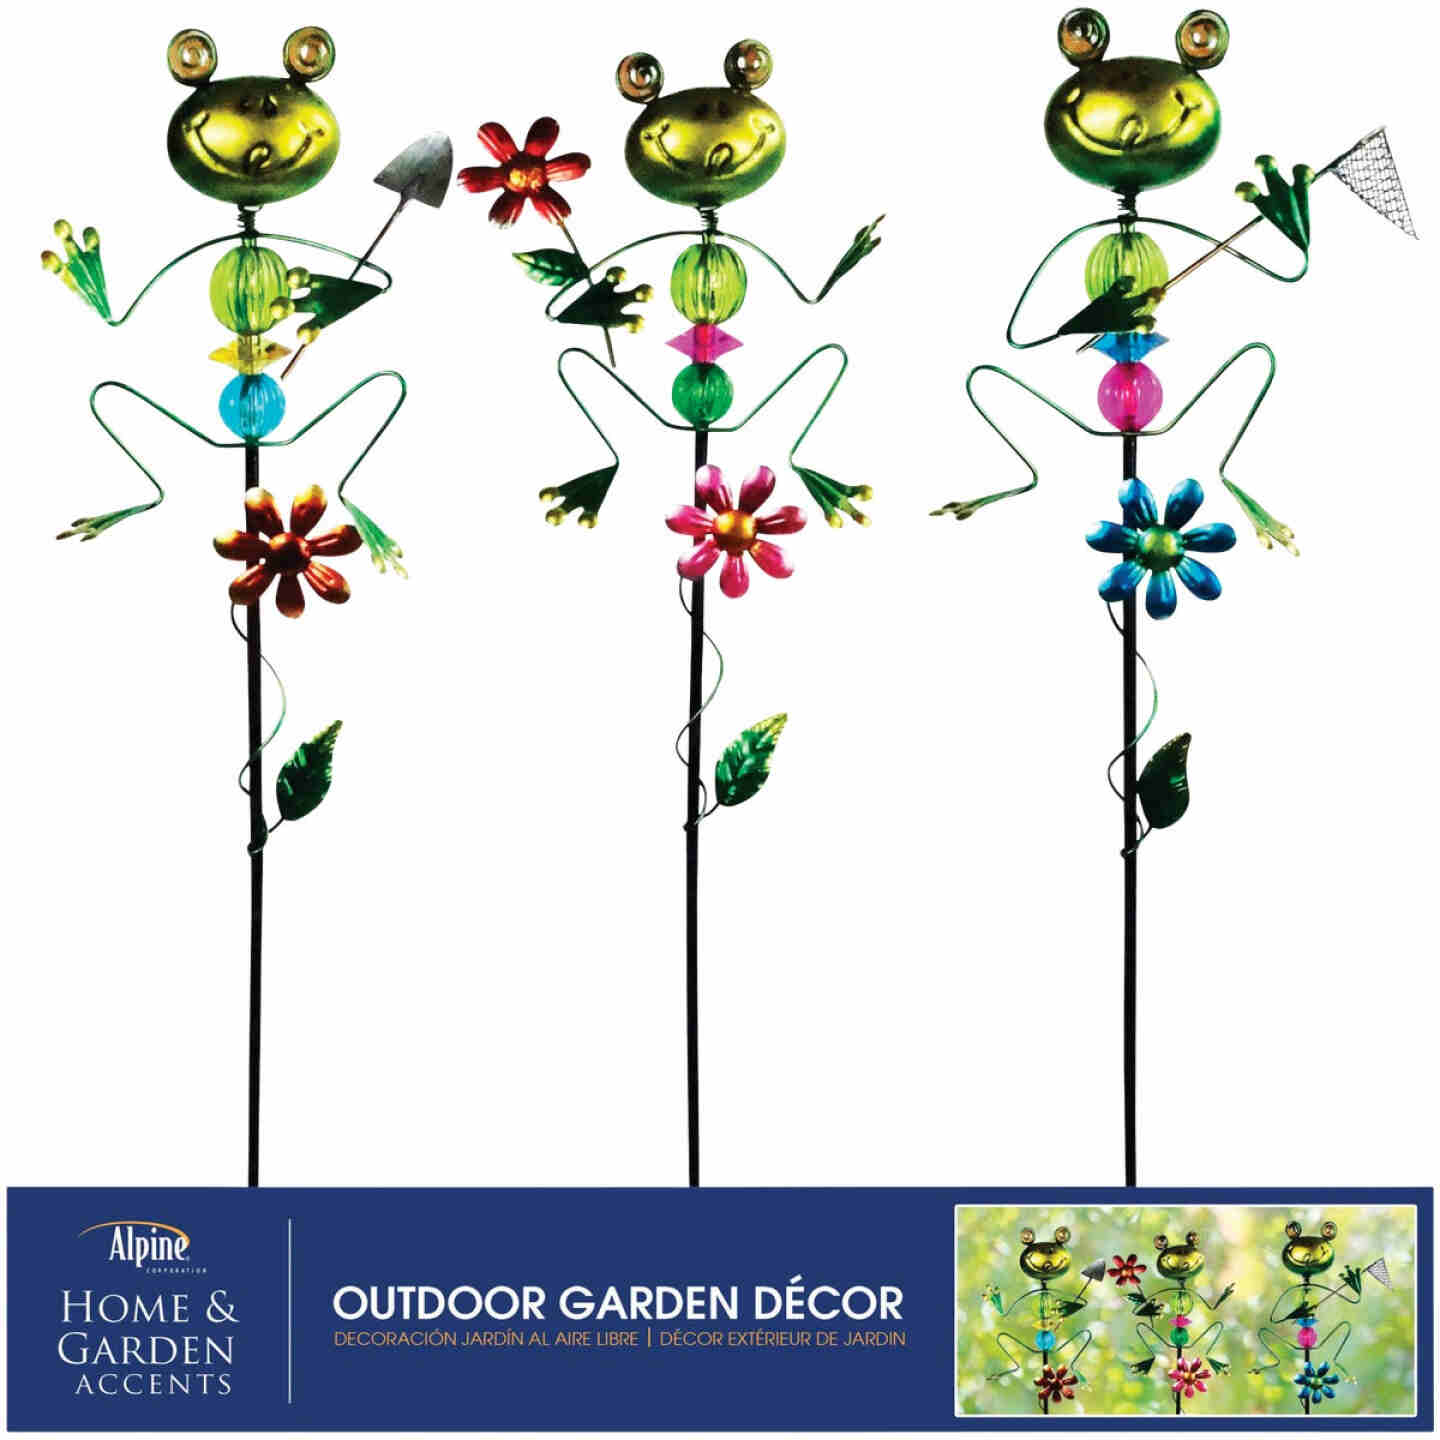 Alpine 36 In. Metal Frog Garden Stake Lawn Ornament Image 3